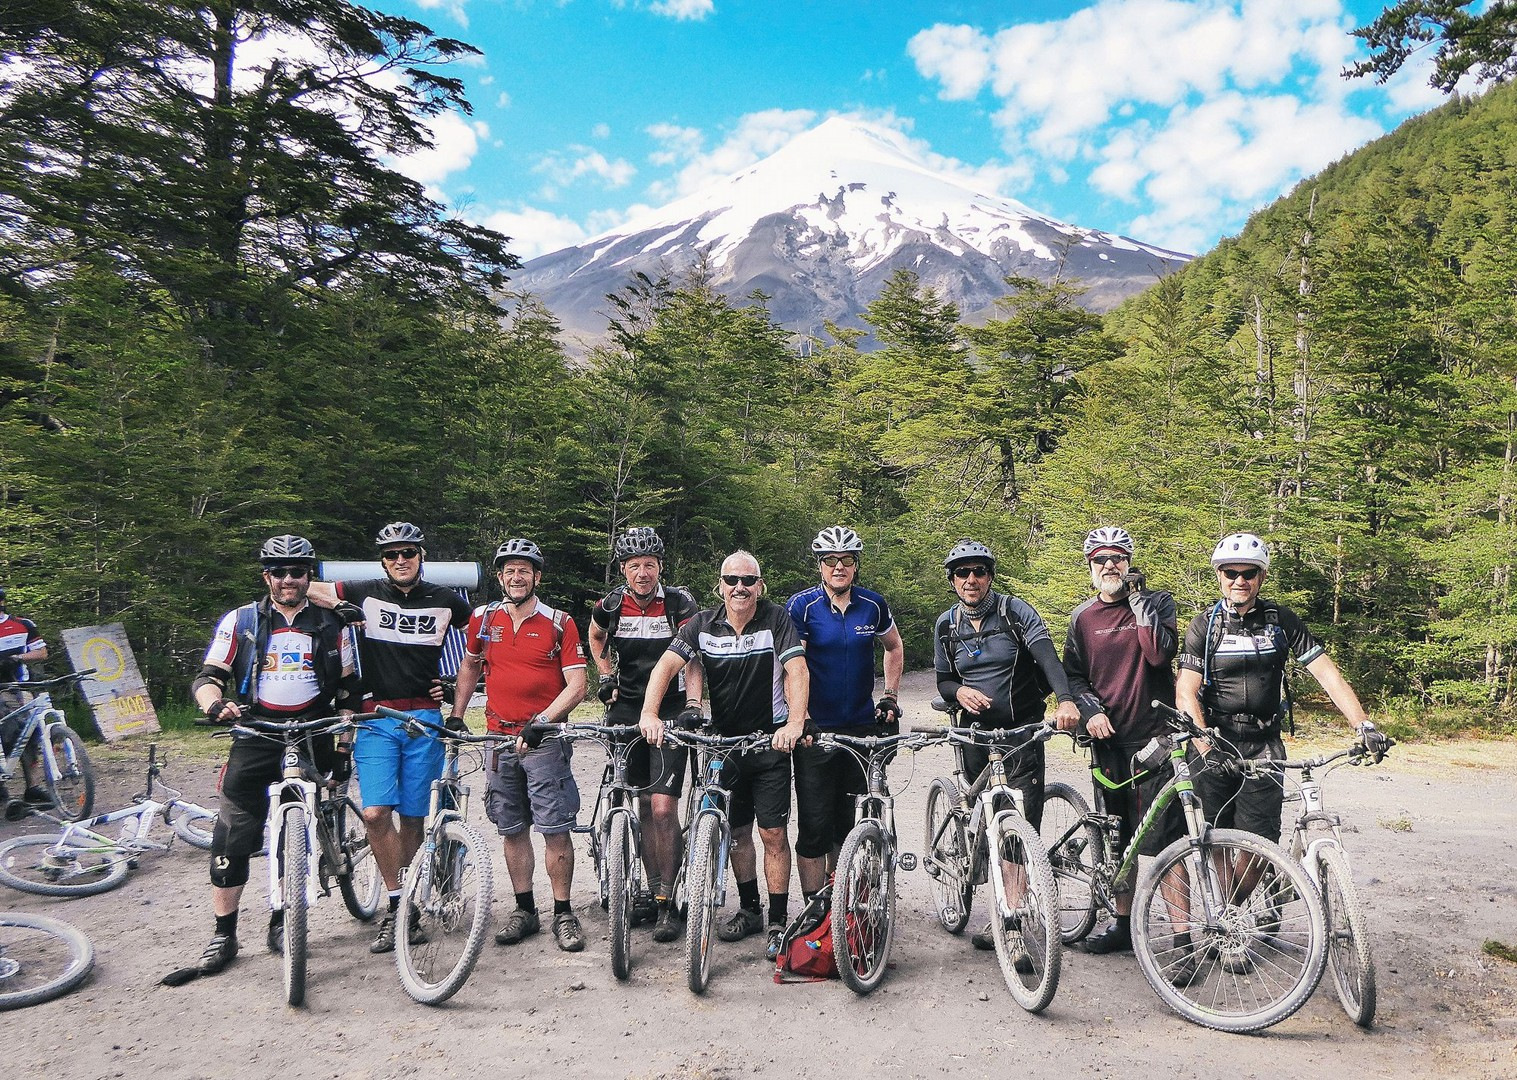 BEST-46.JPG - Chile and Argentina - Wild Patagonia - Guided Mountain Bike Holiday - Mountain Biking